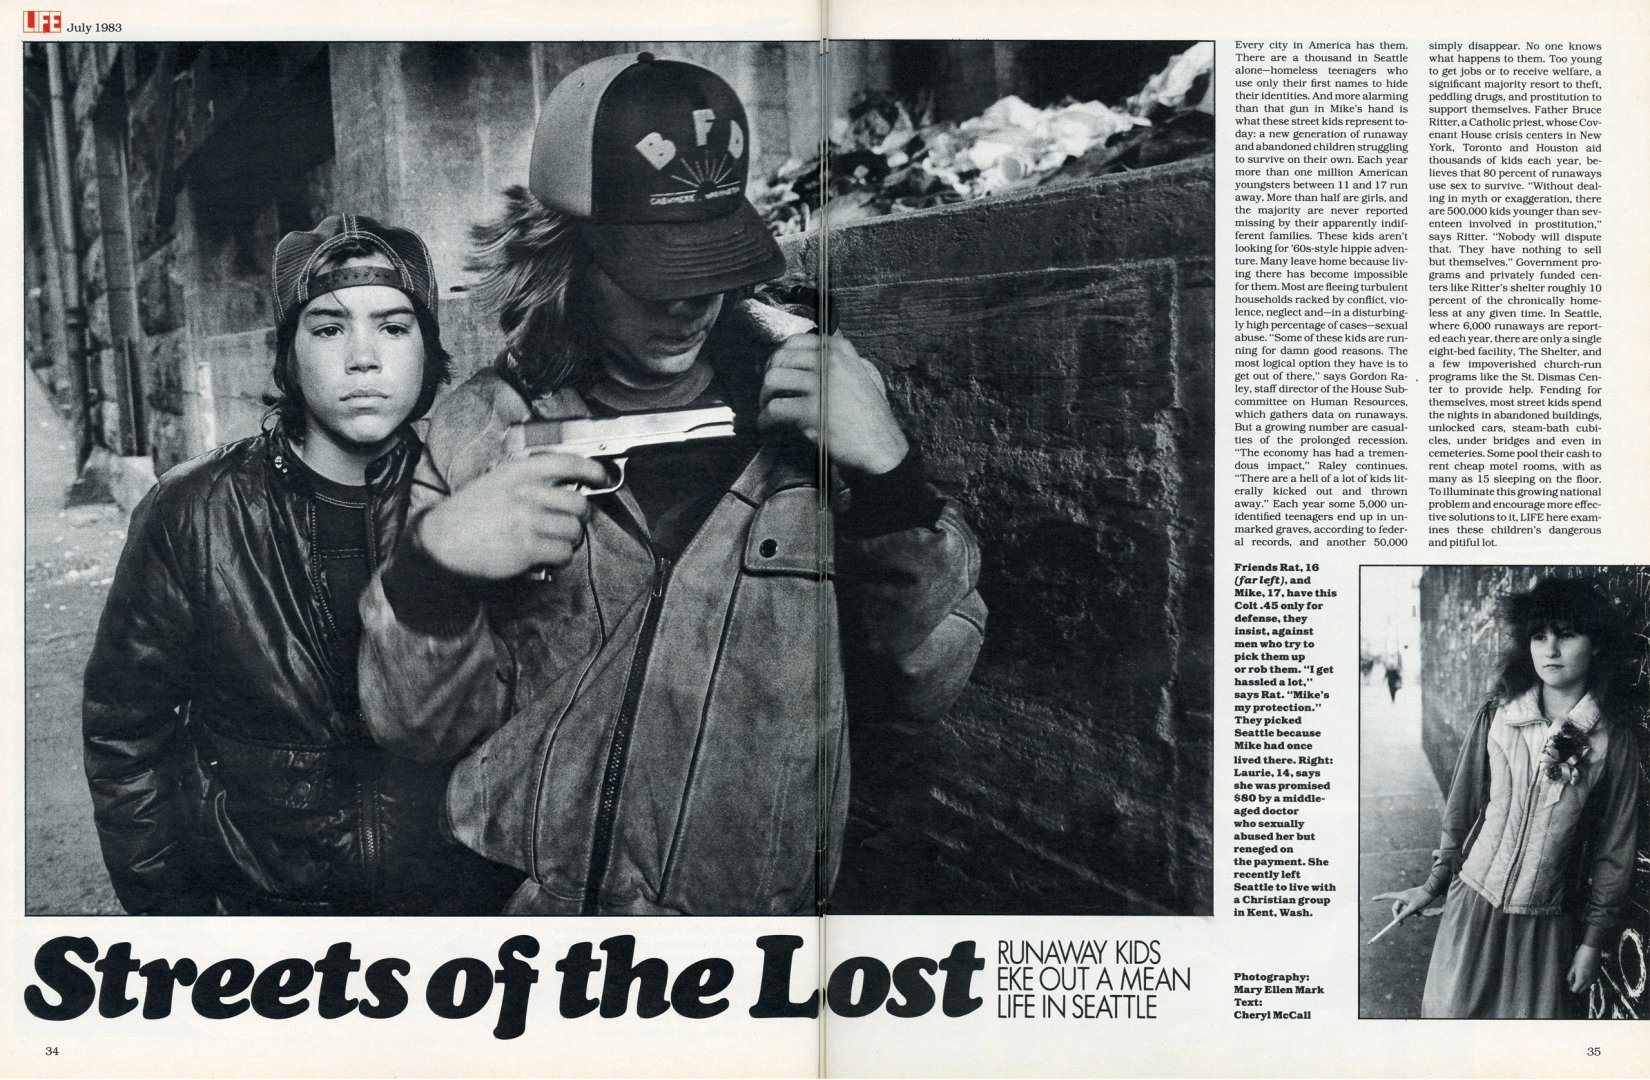 """Streets of the Lost: Runaway Kids eke out a mean life in Seattle""—LIFE magazine, July 1983. © Mary Ellen Mark—LIFE Magazine"